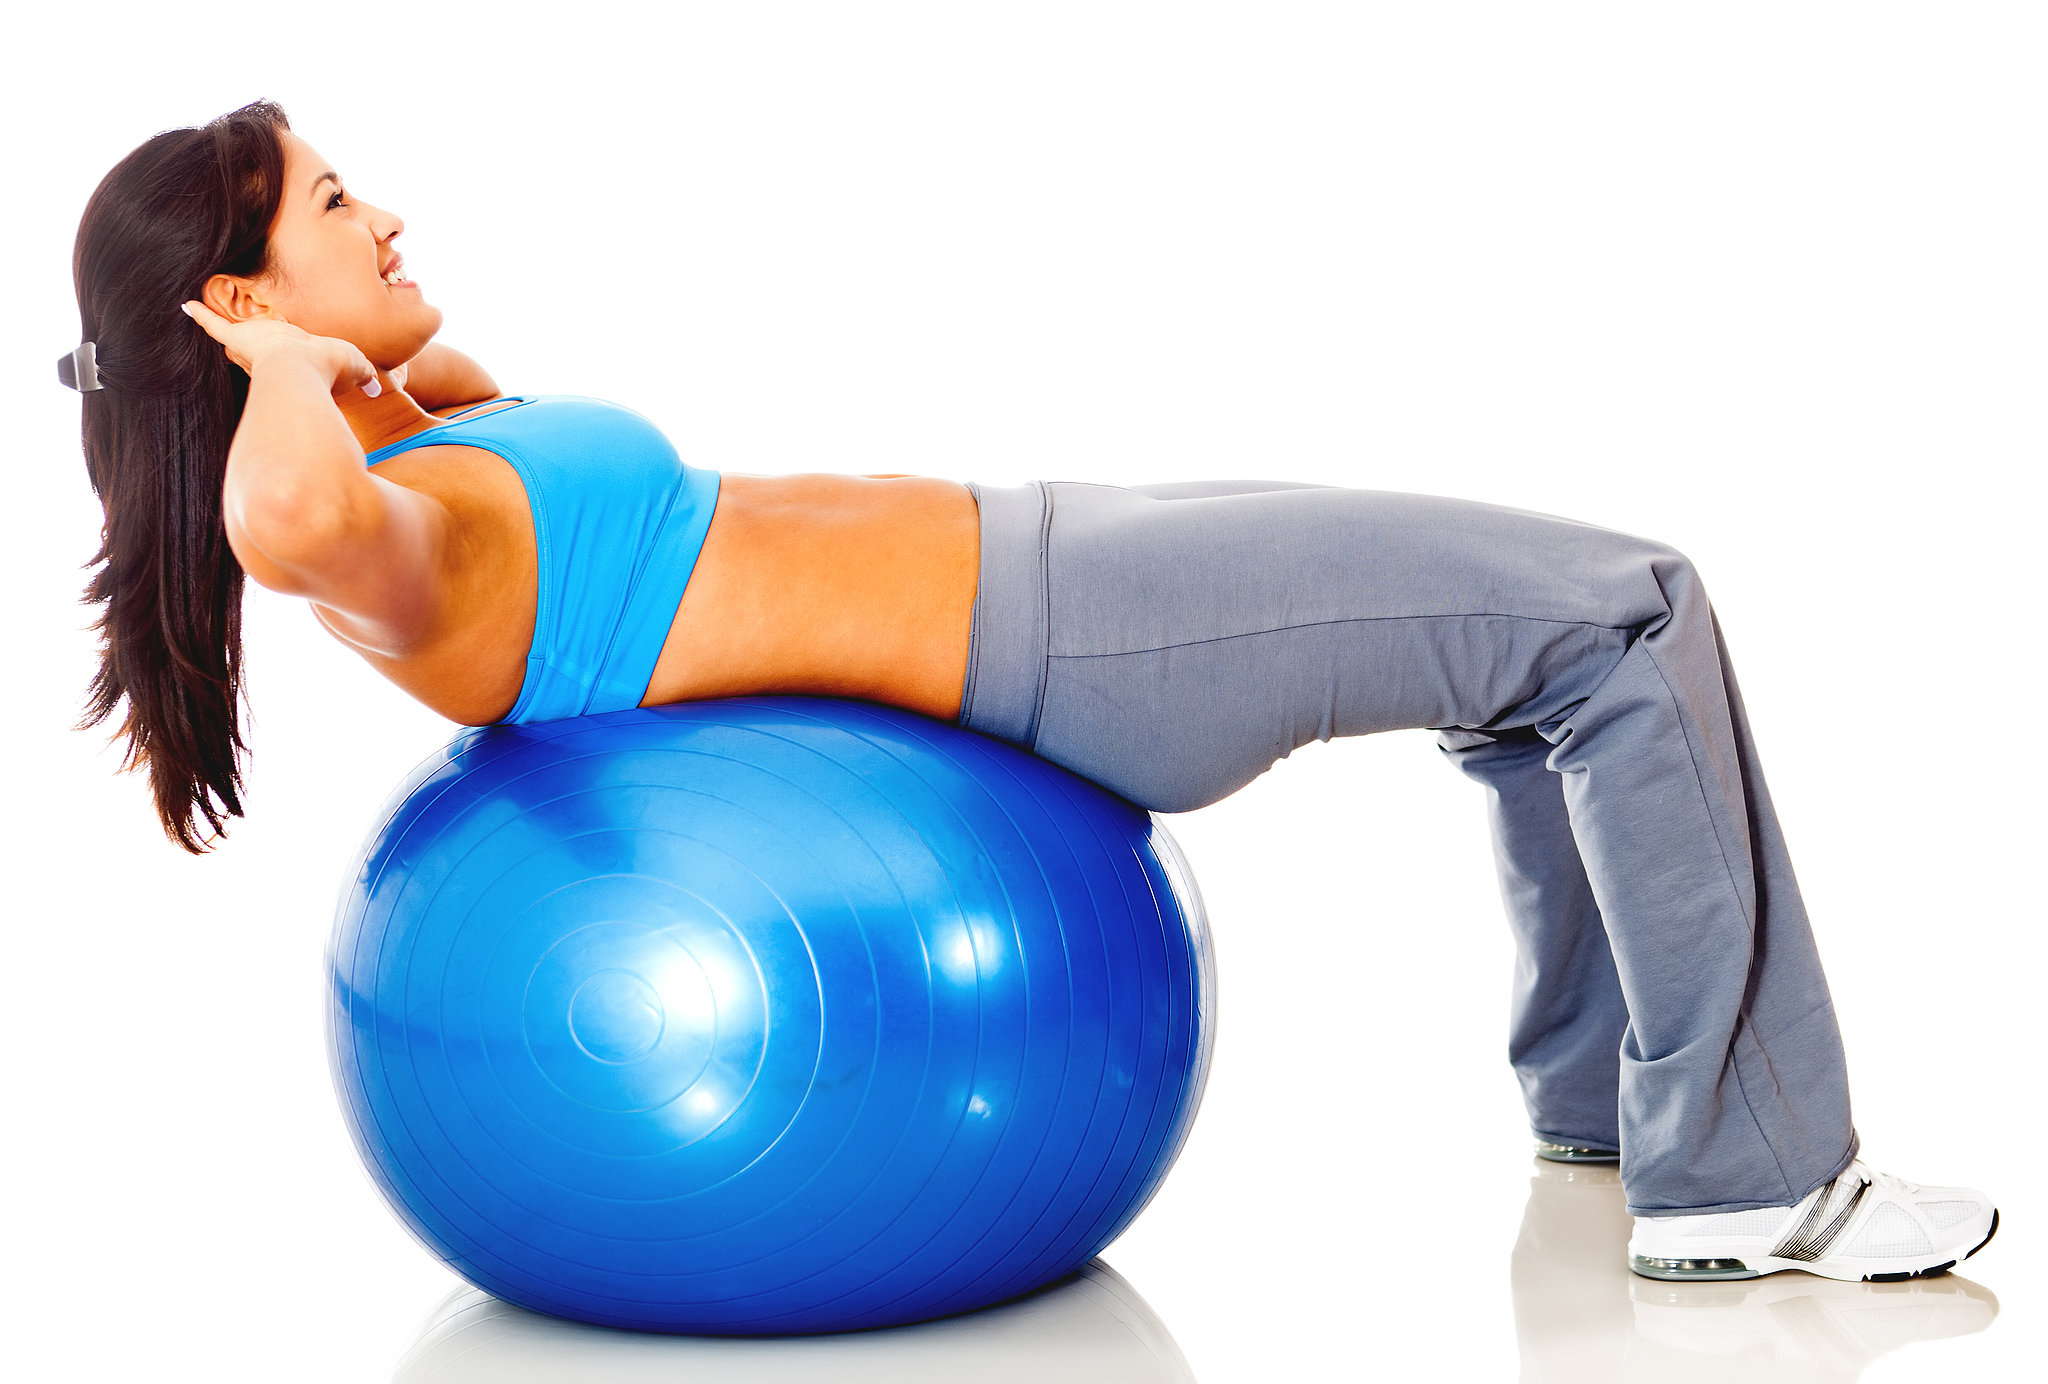 http://www.popsugar.com.au/fitness/photo-gallery/32196457/image/32196448/Upper-Abs-Crunches-Exercise-Ball